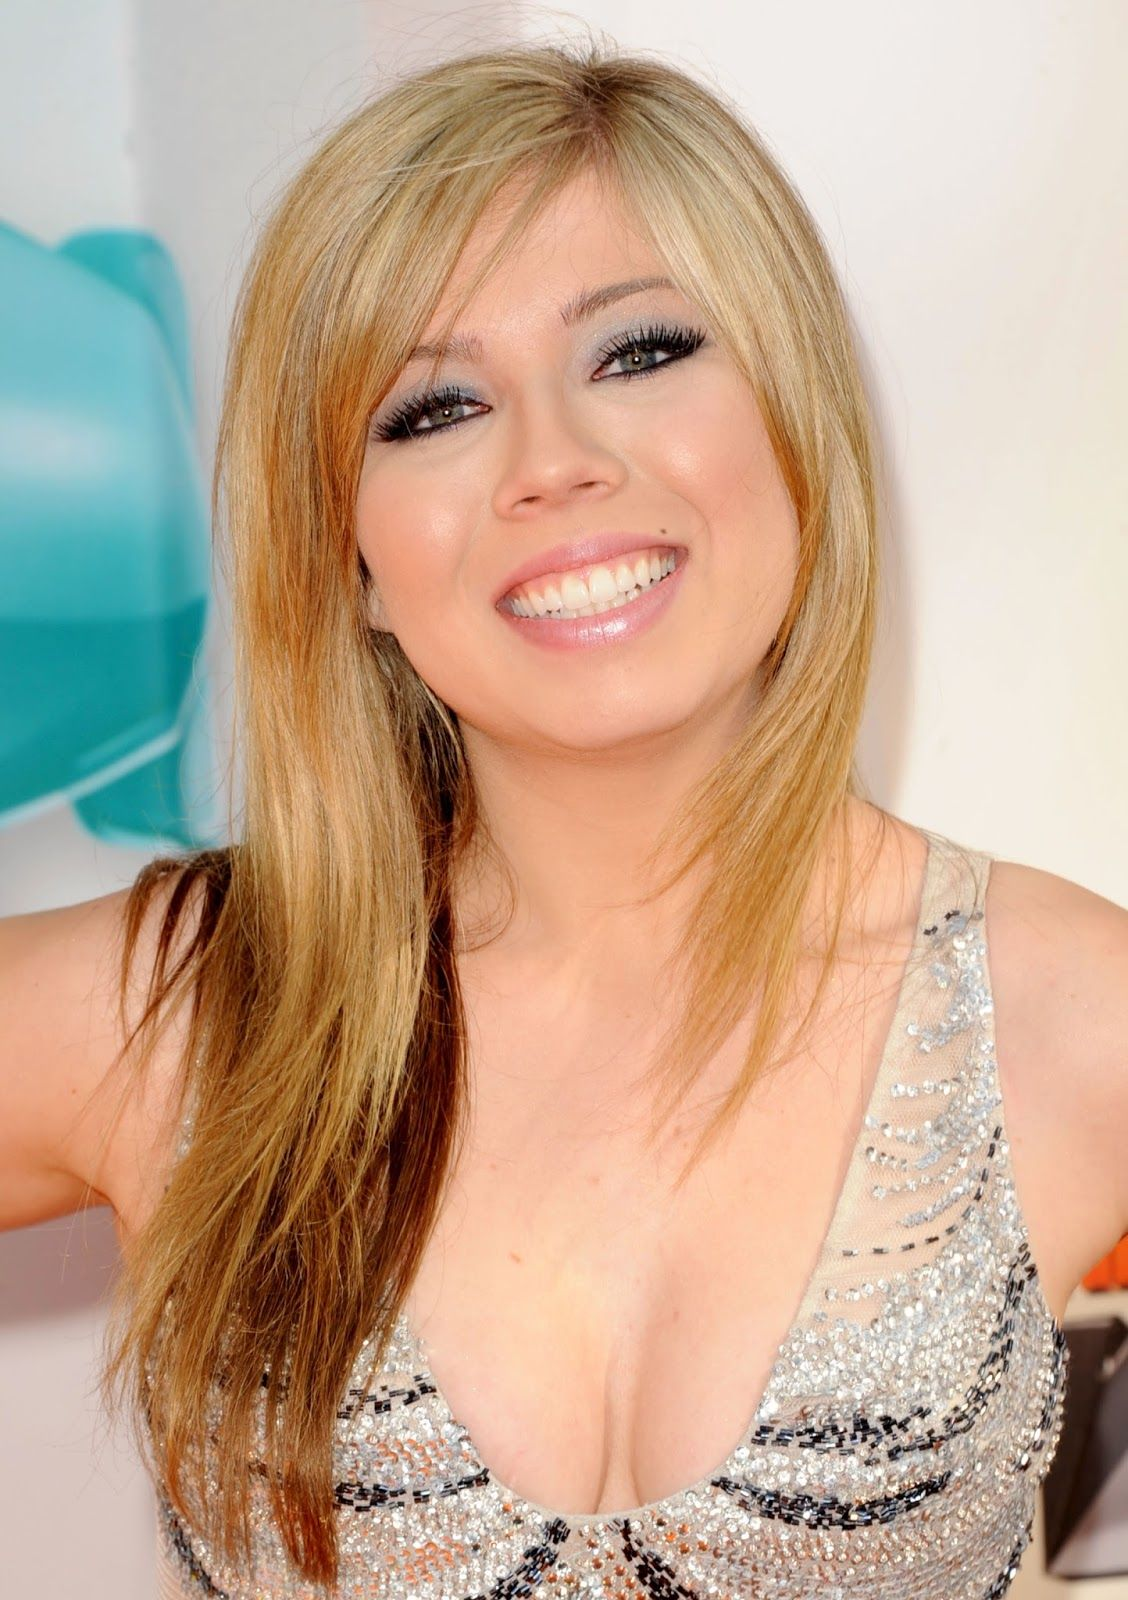 Boobs Cleavage Jennette McCurdy naked photo 2017